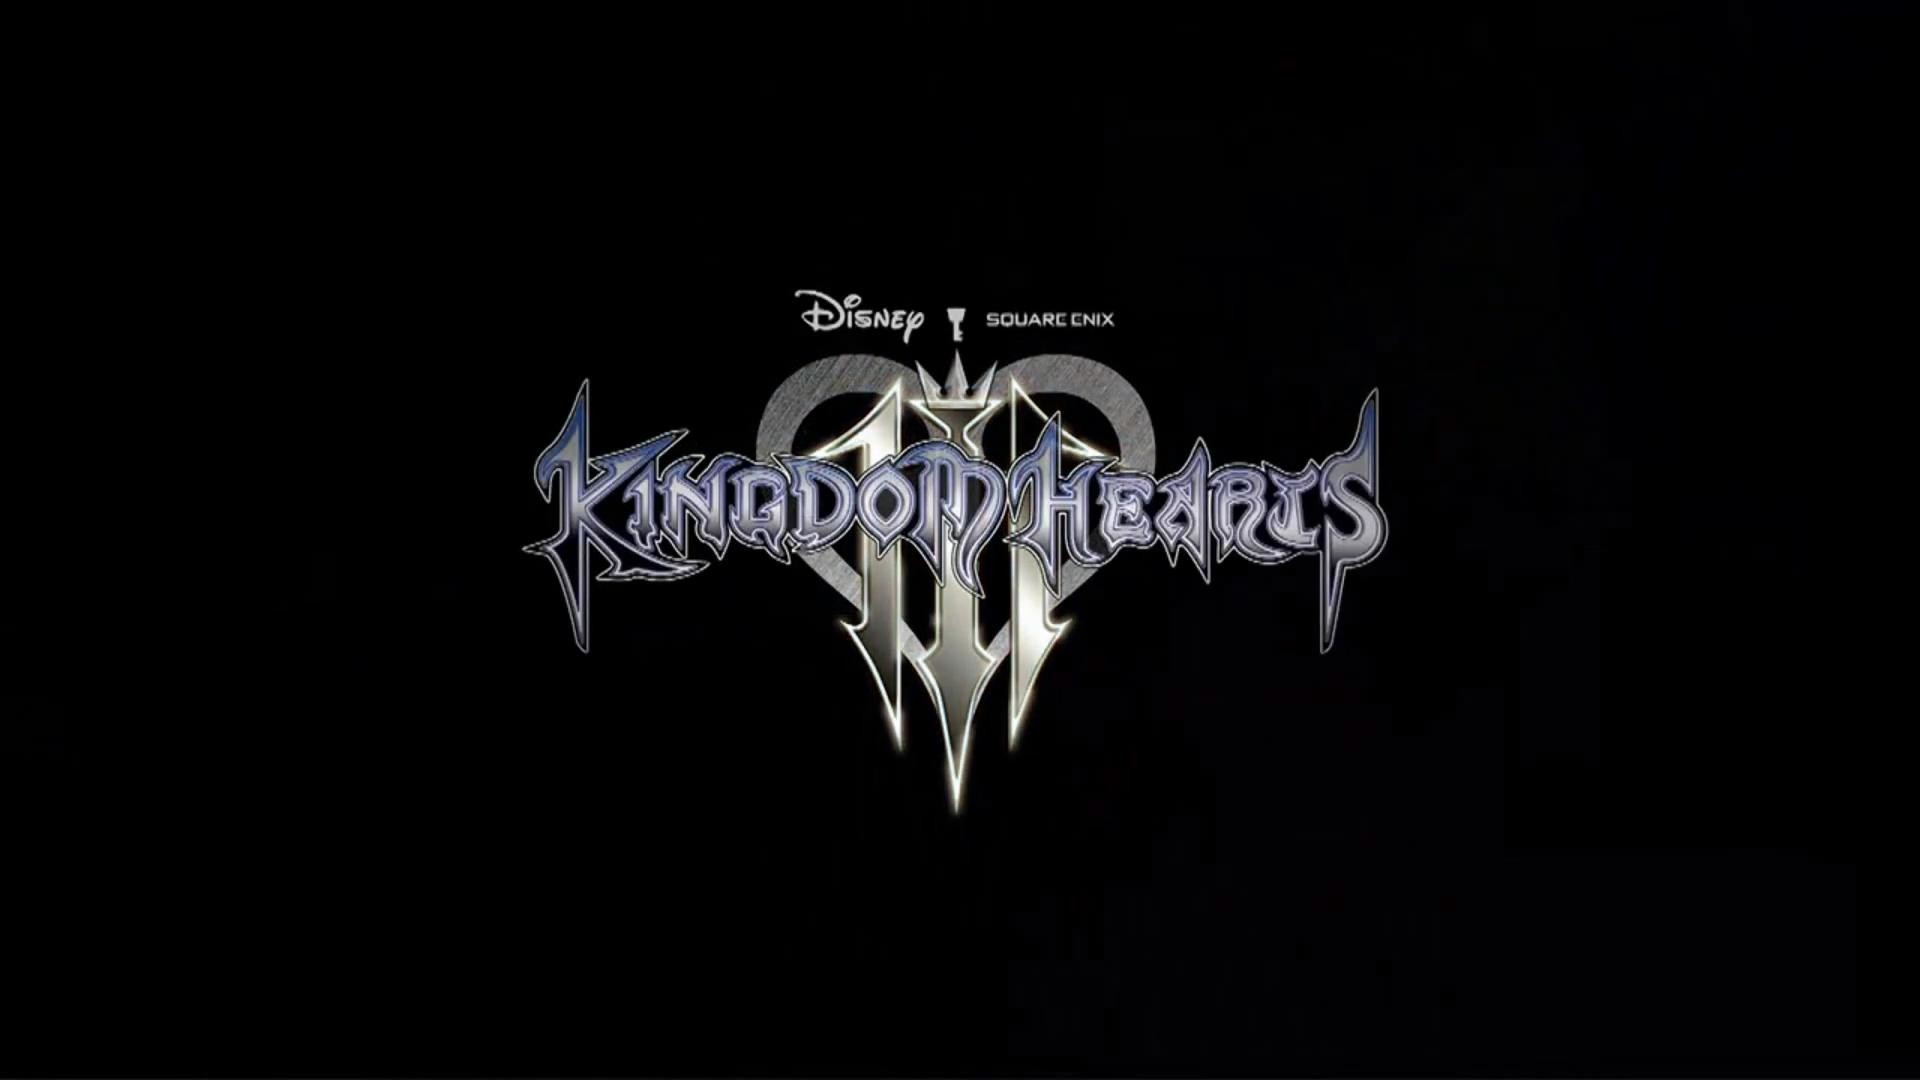 Wallpapers For > Kingdom Hearts 3 Iphone Wallpaper